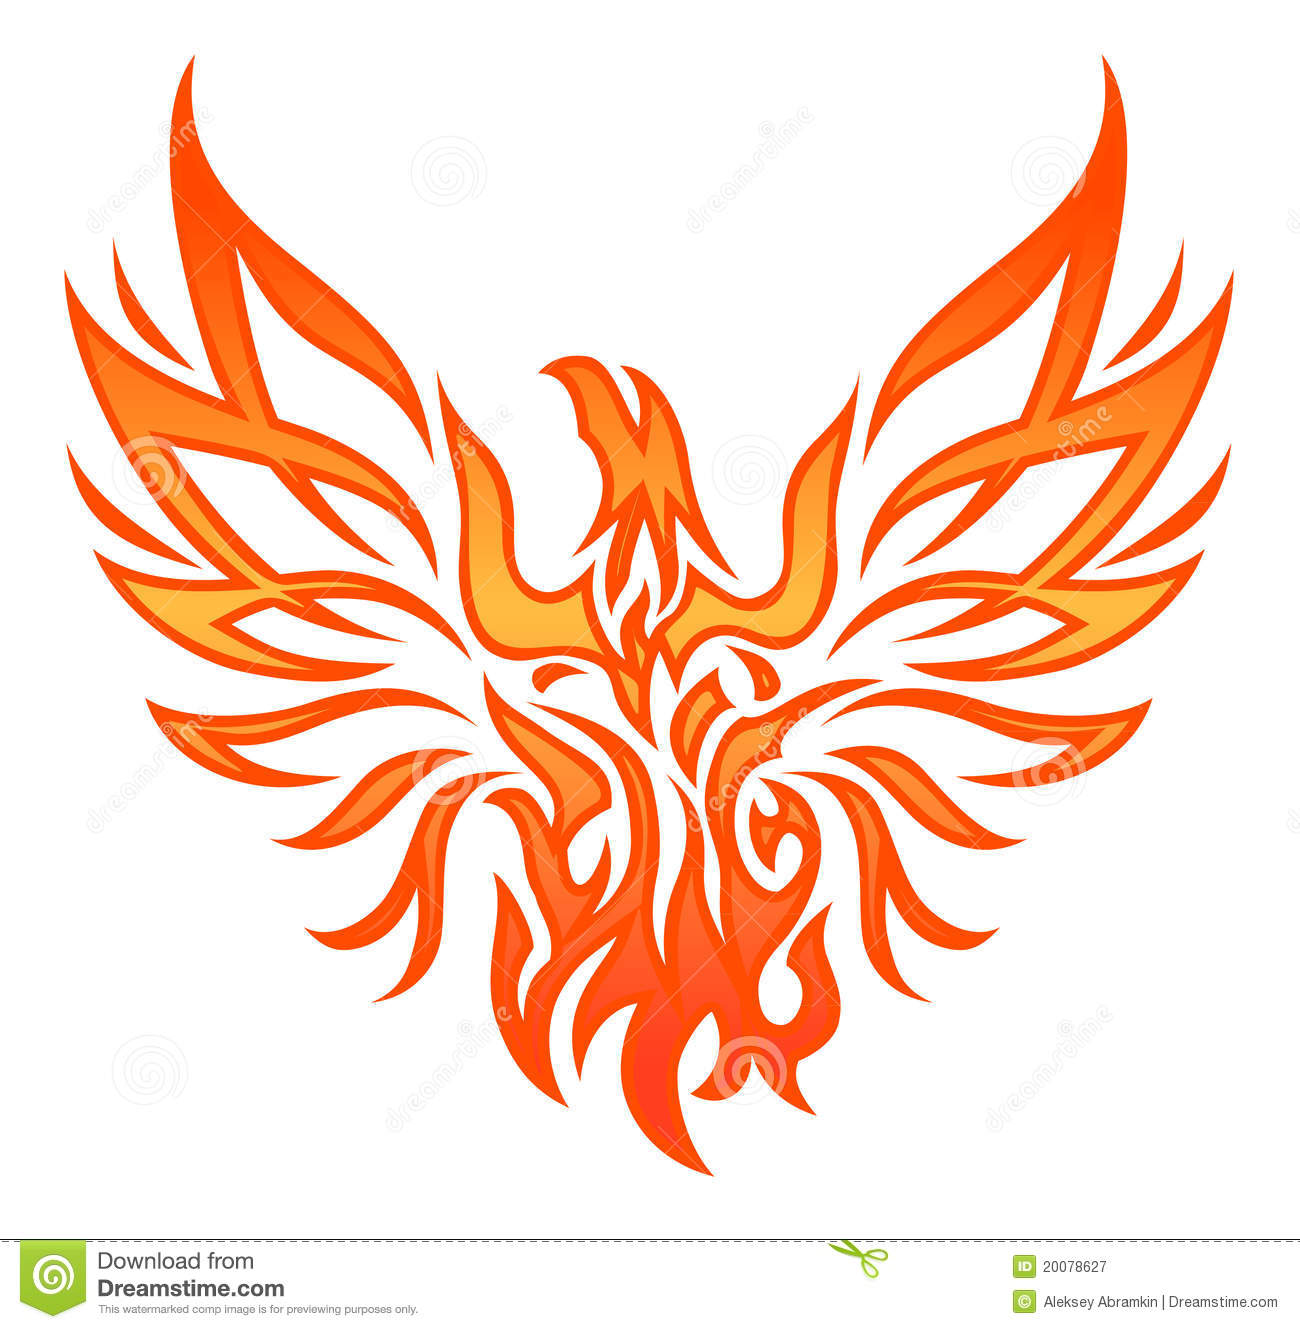 Fire Eagle Tattoo Royalty Free Stock Photography - Image: 20078627